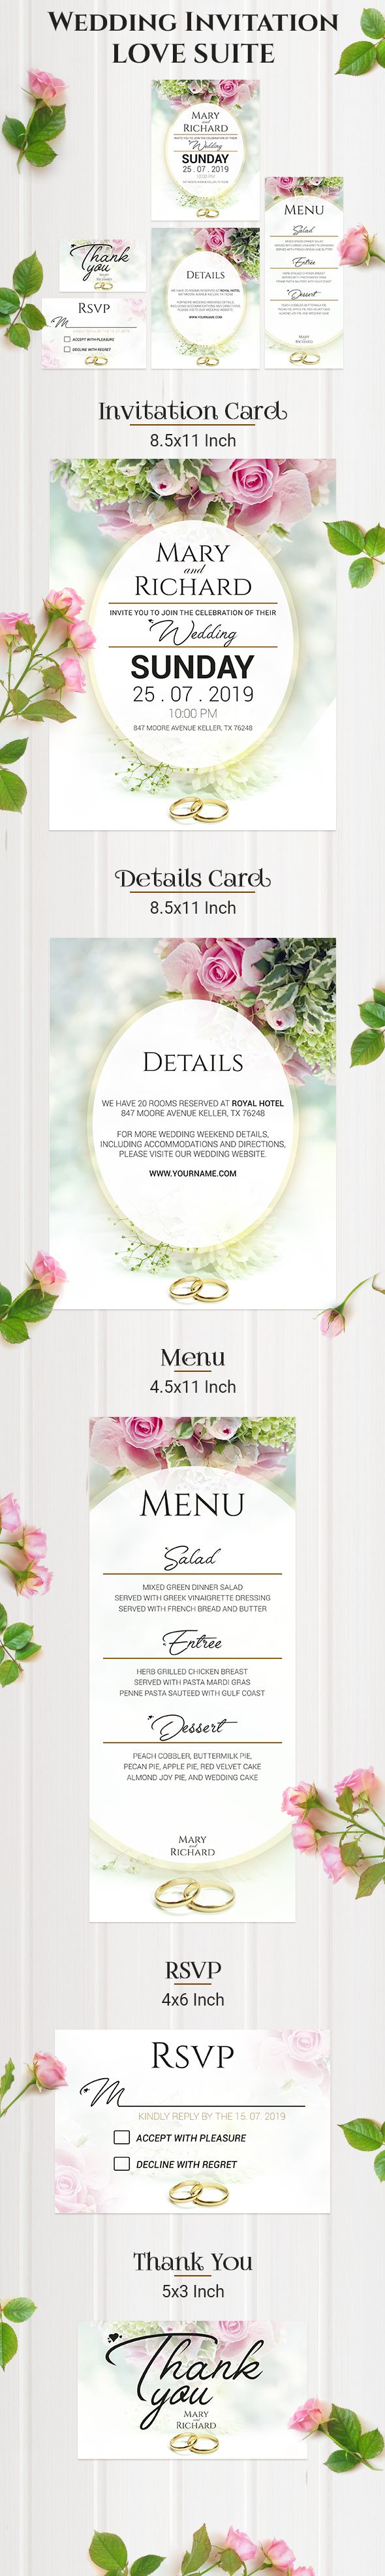 Wedding Invitation LOVE SUITE Screenshot 1